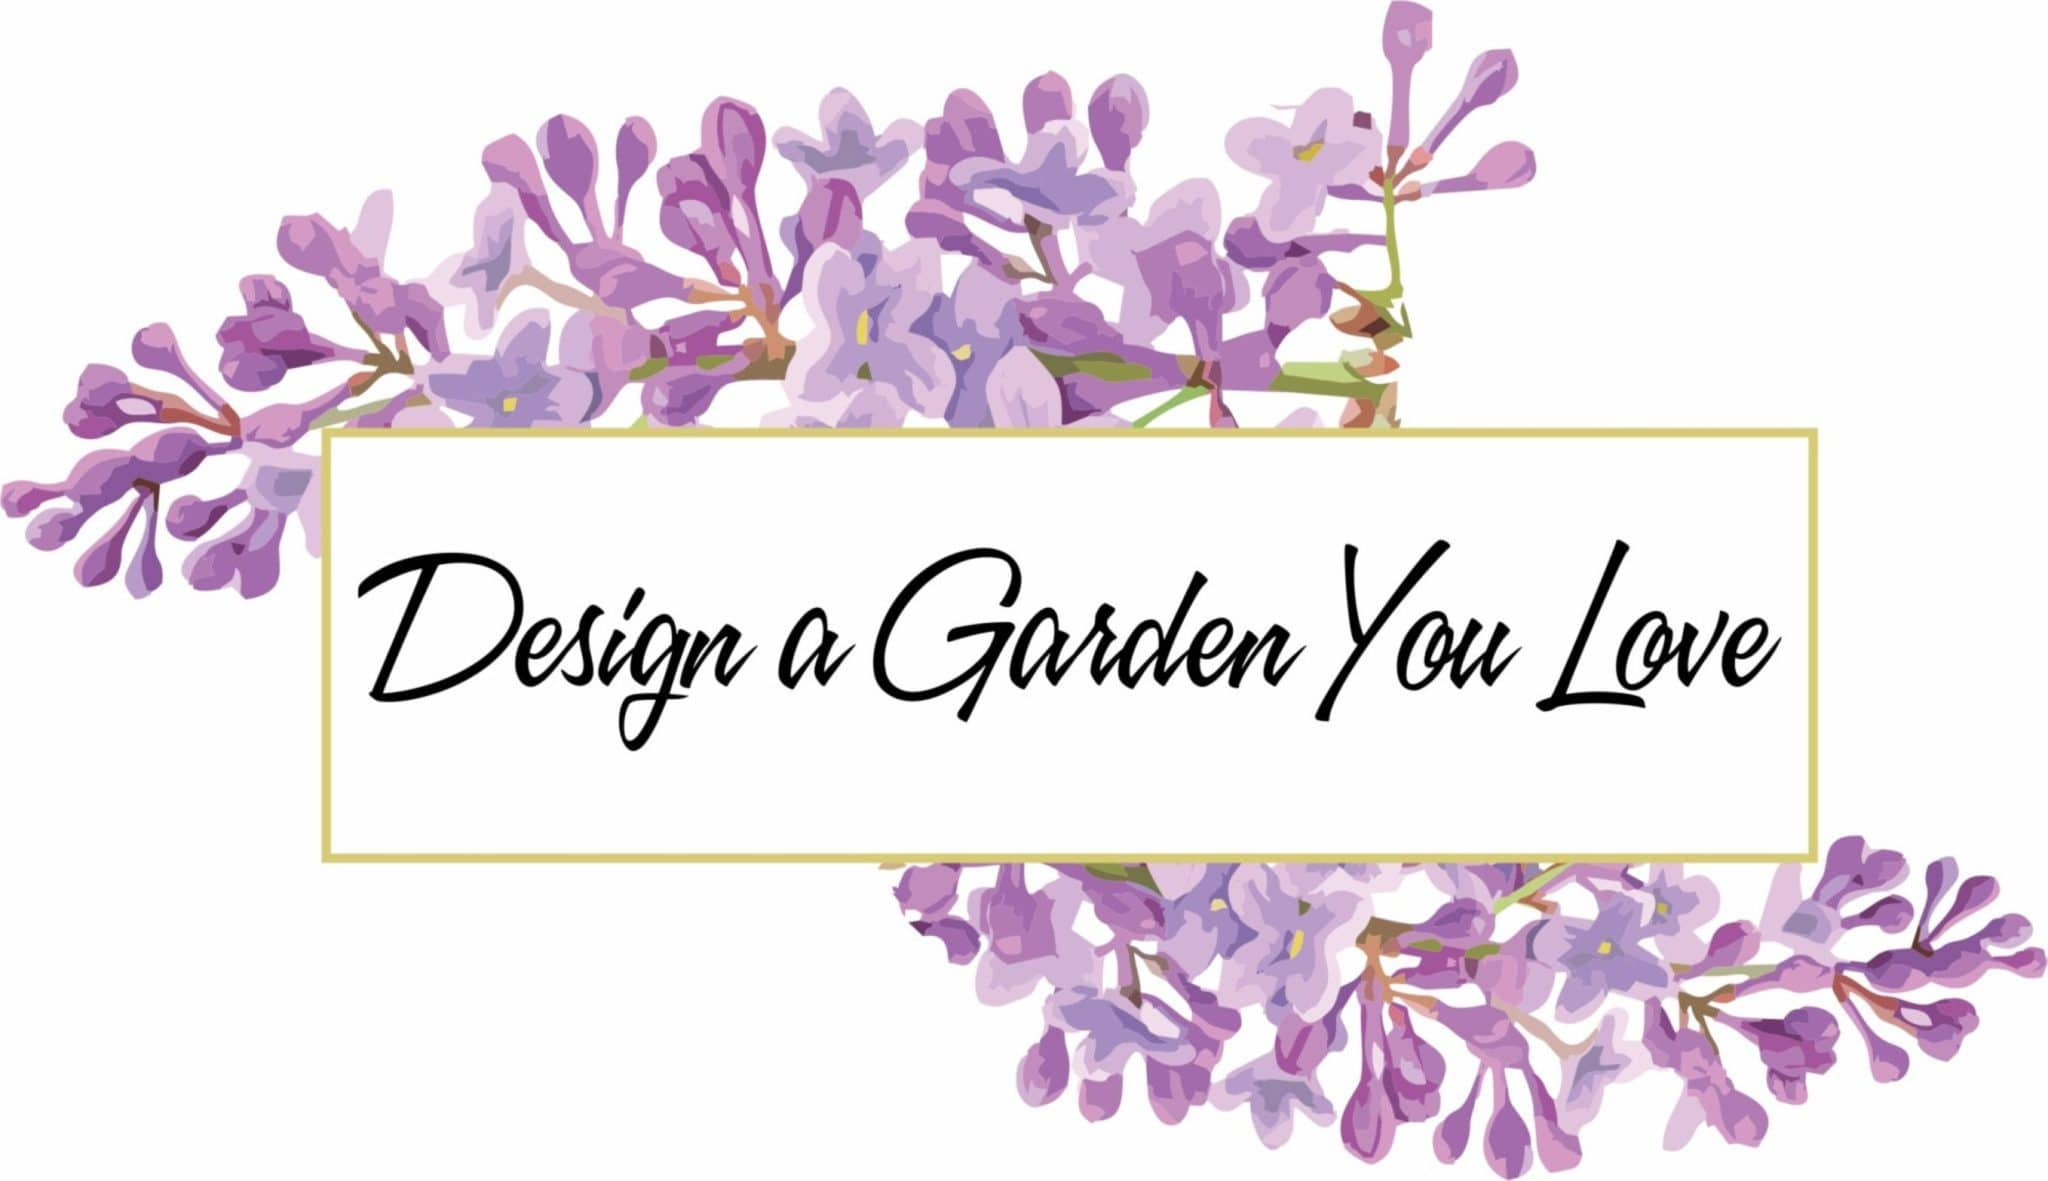 Design a Garden you Love